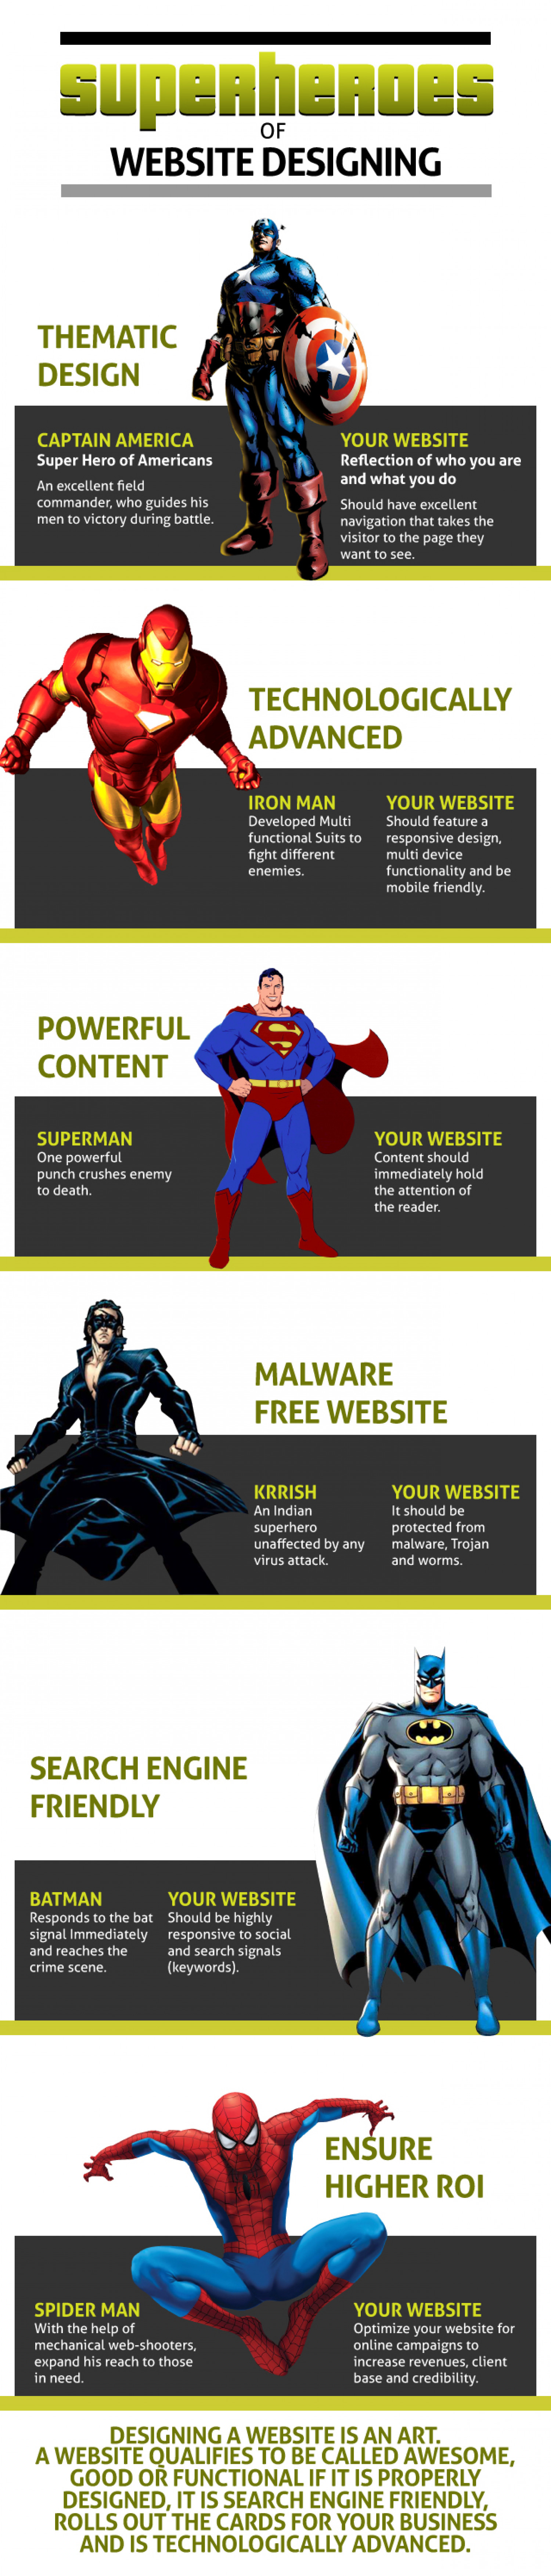 Superheroes of Website Designing Infographic